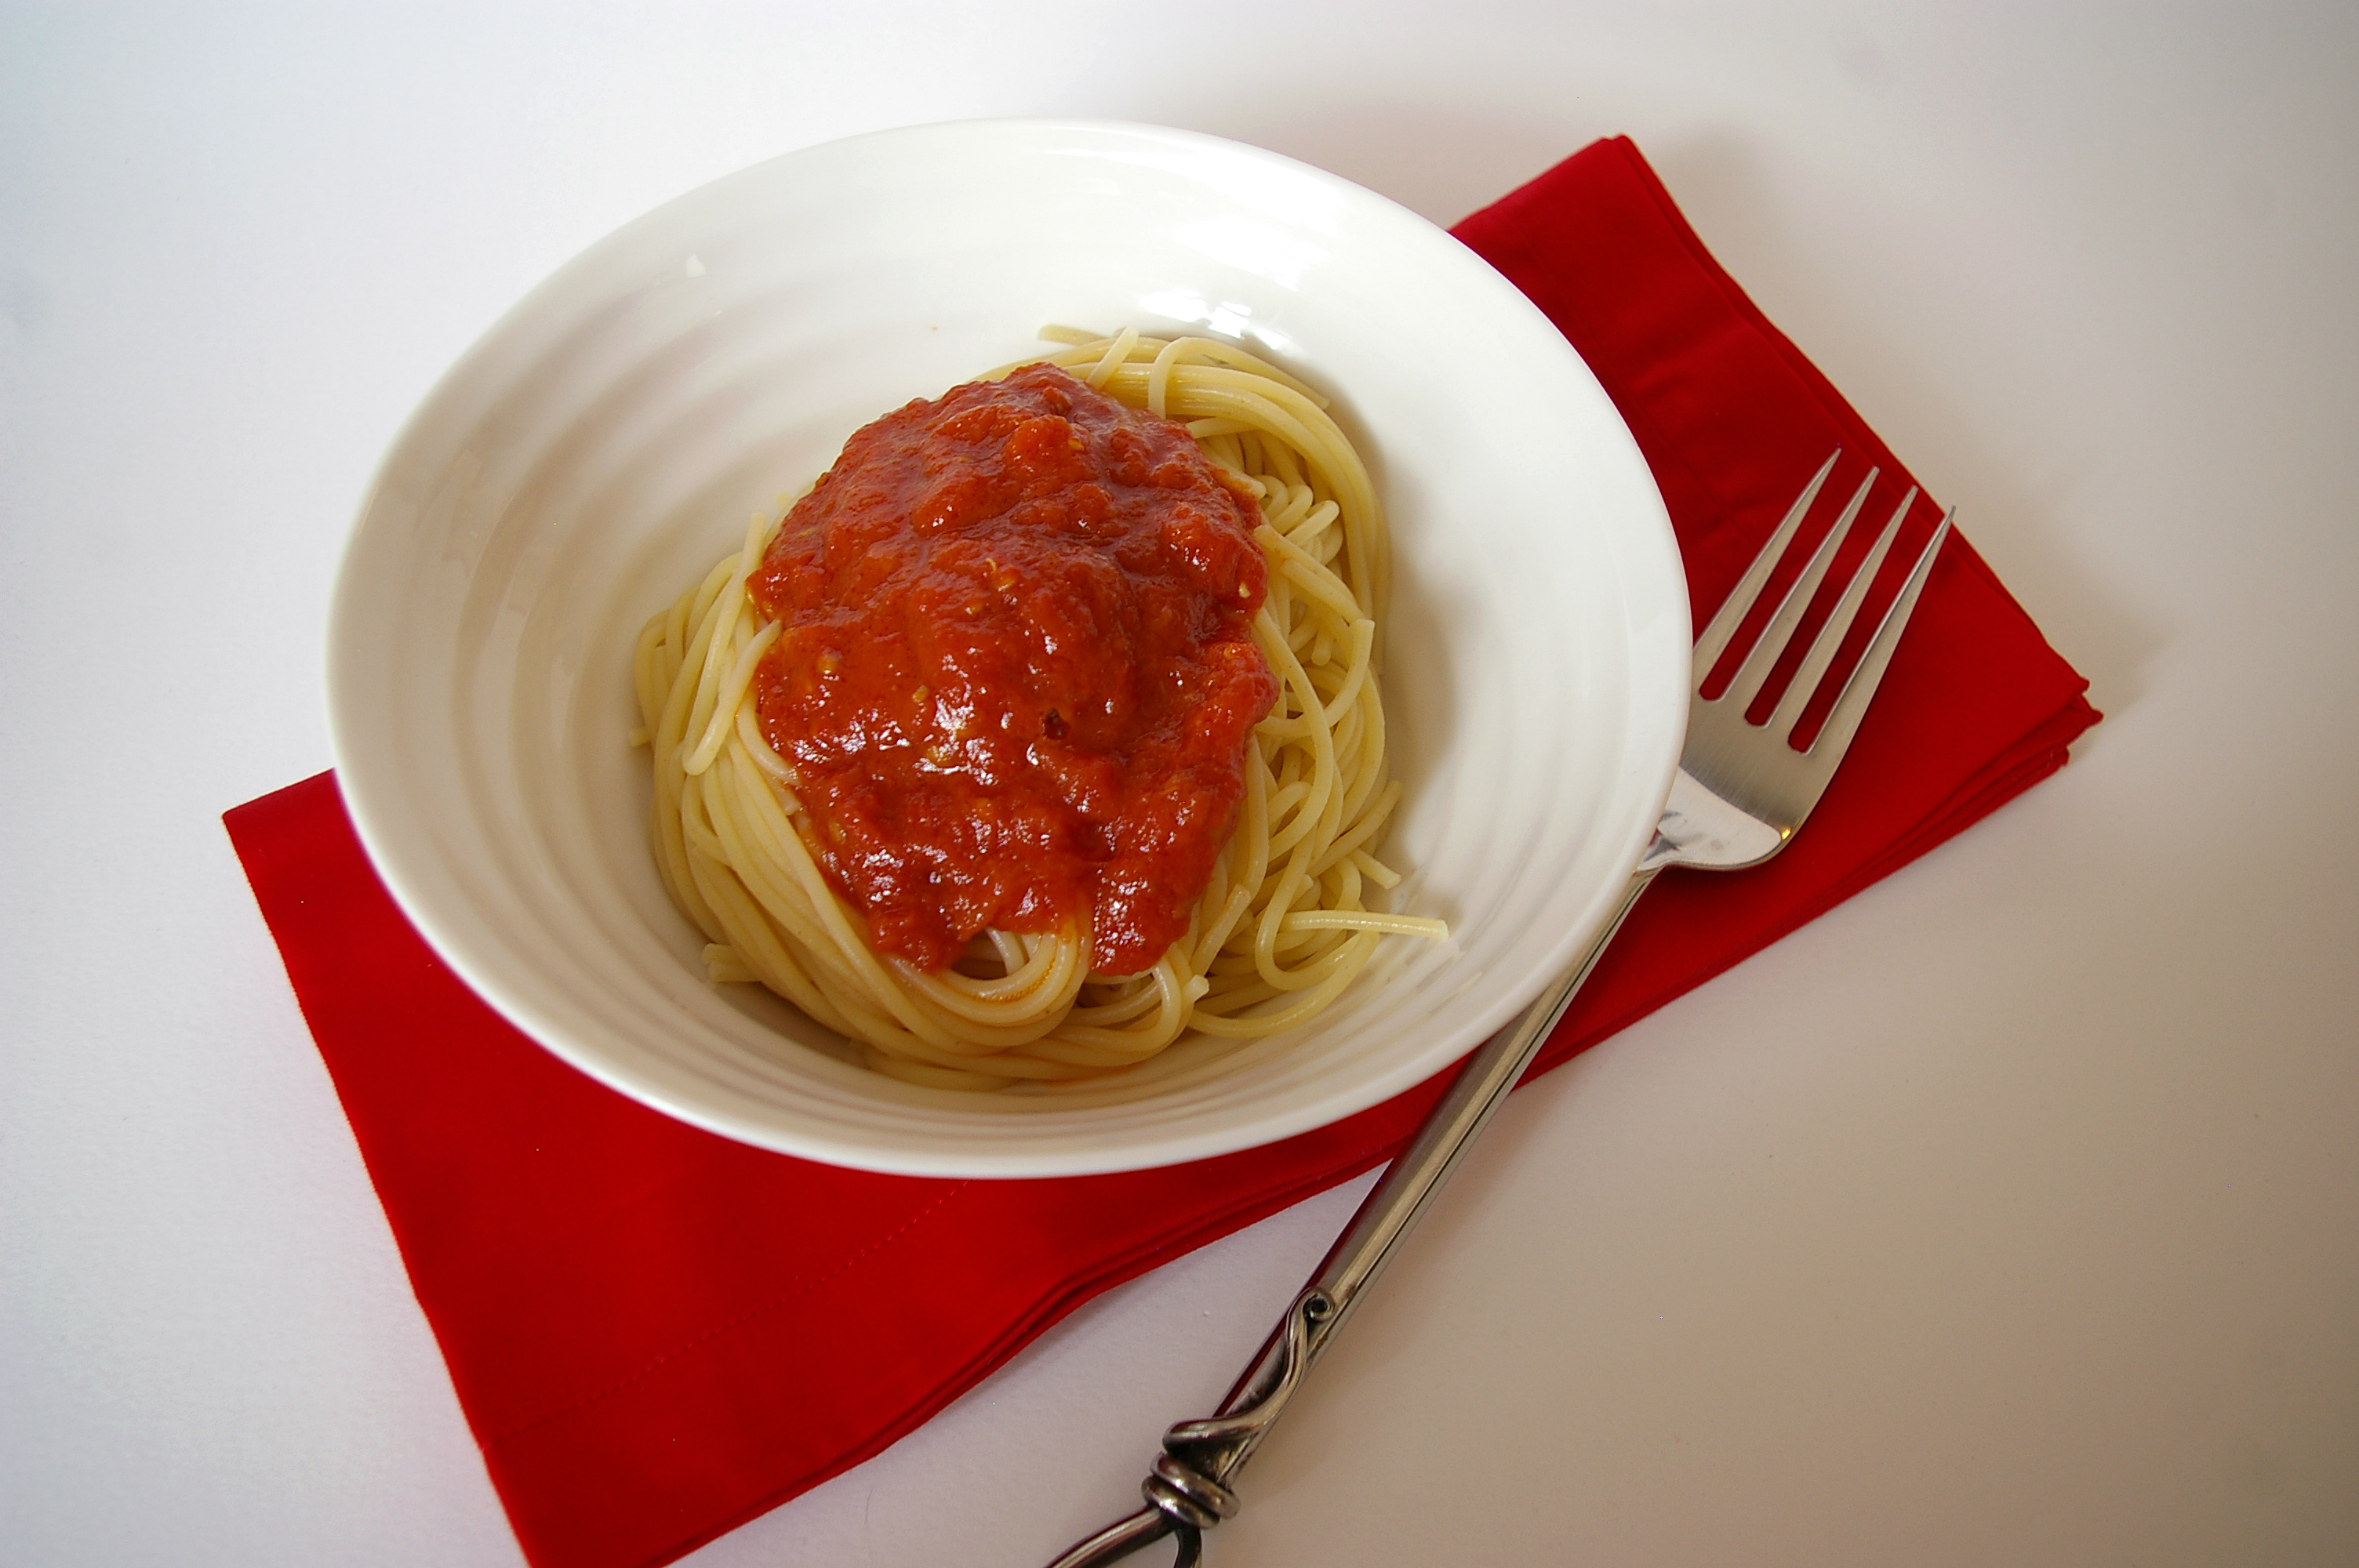 Spaghetti and Sauce I